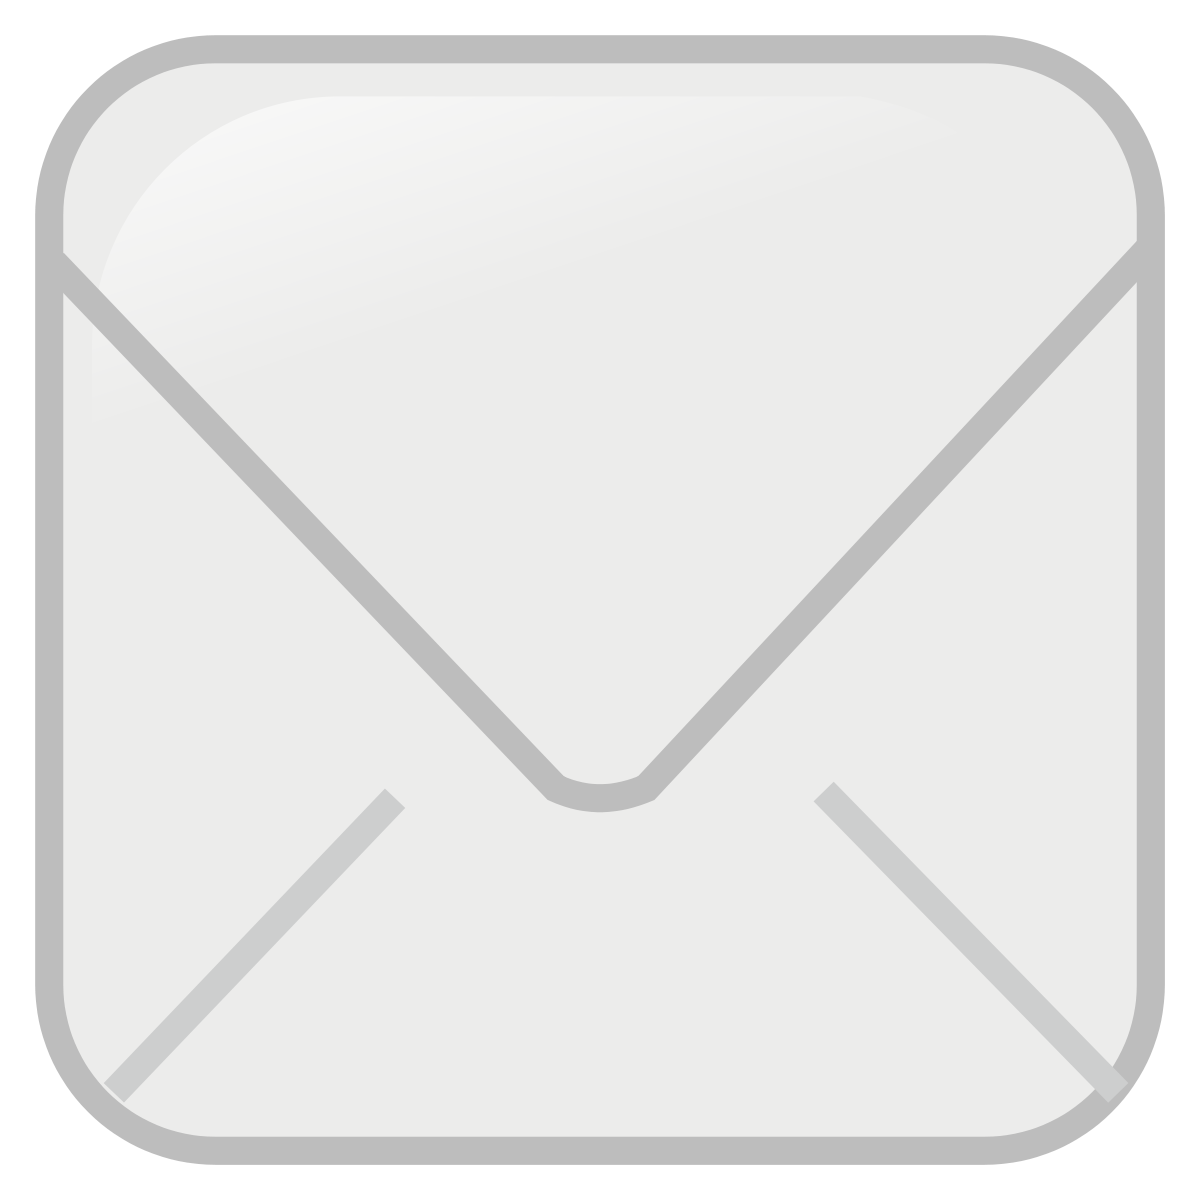 File:Email social icon.svg.